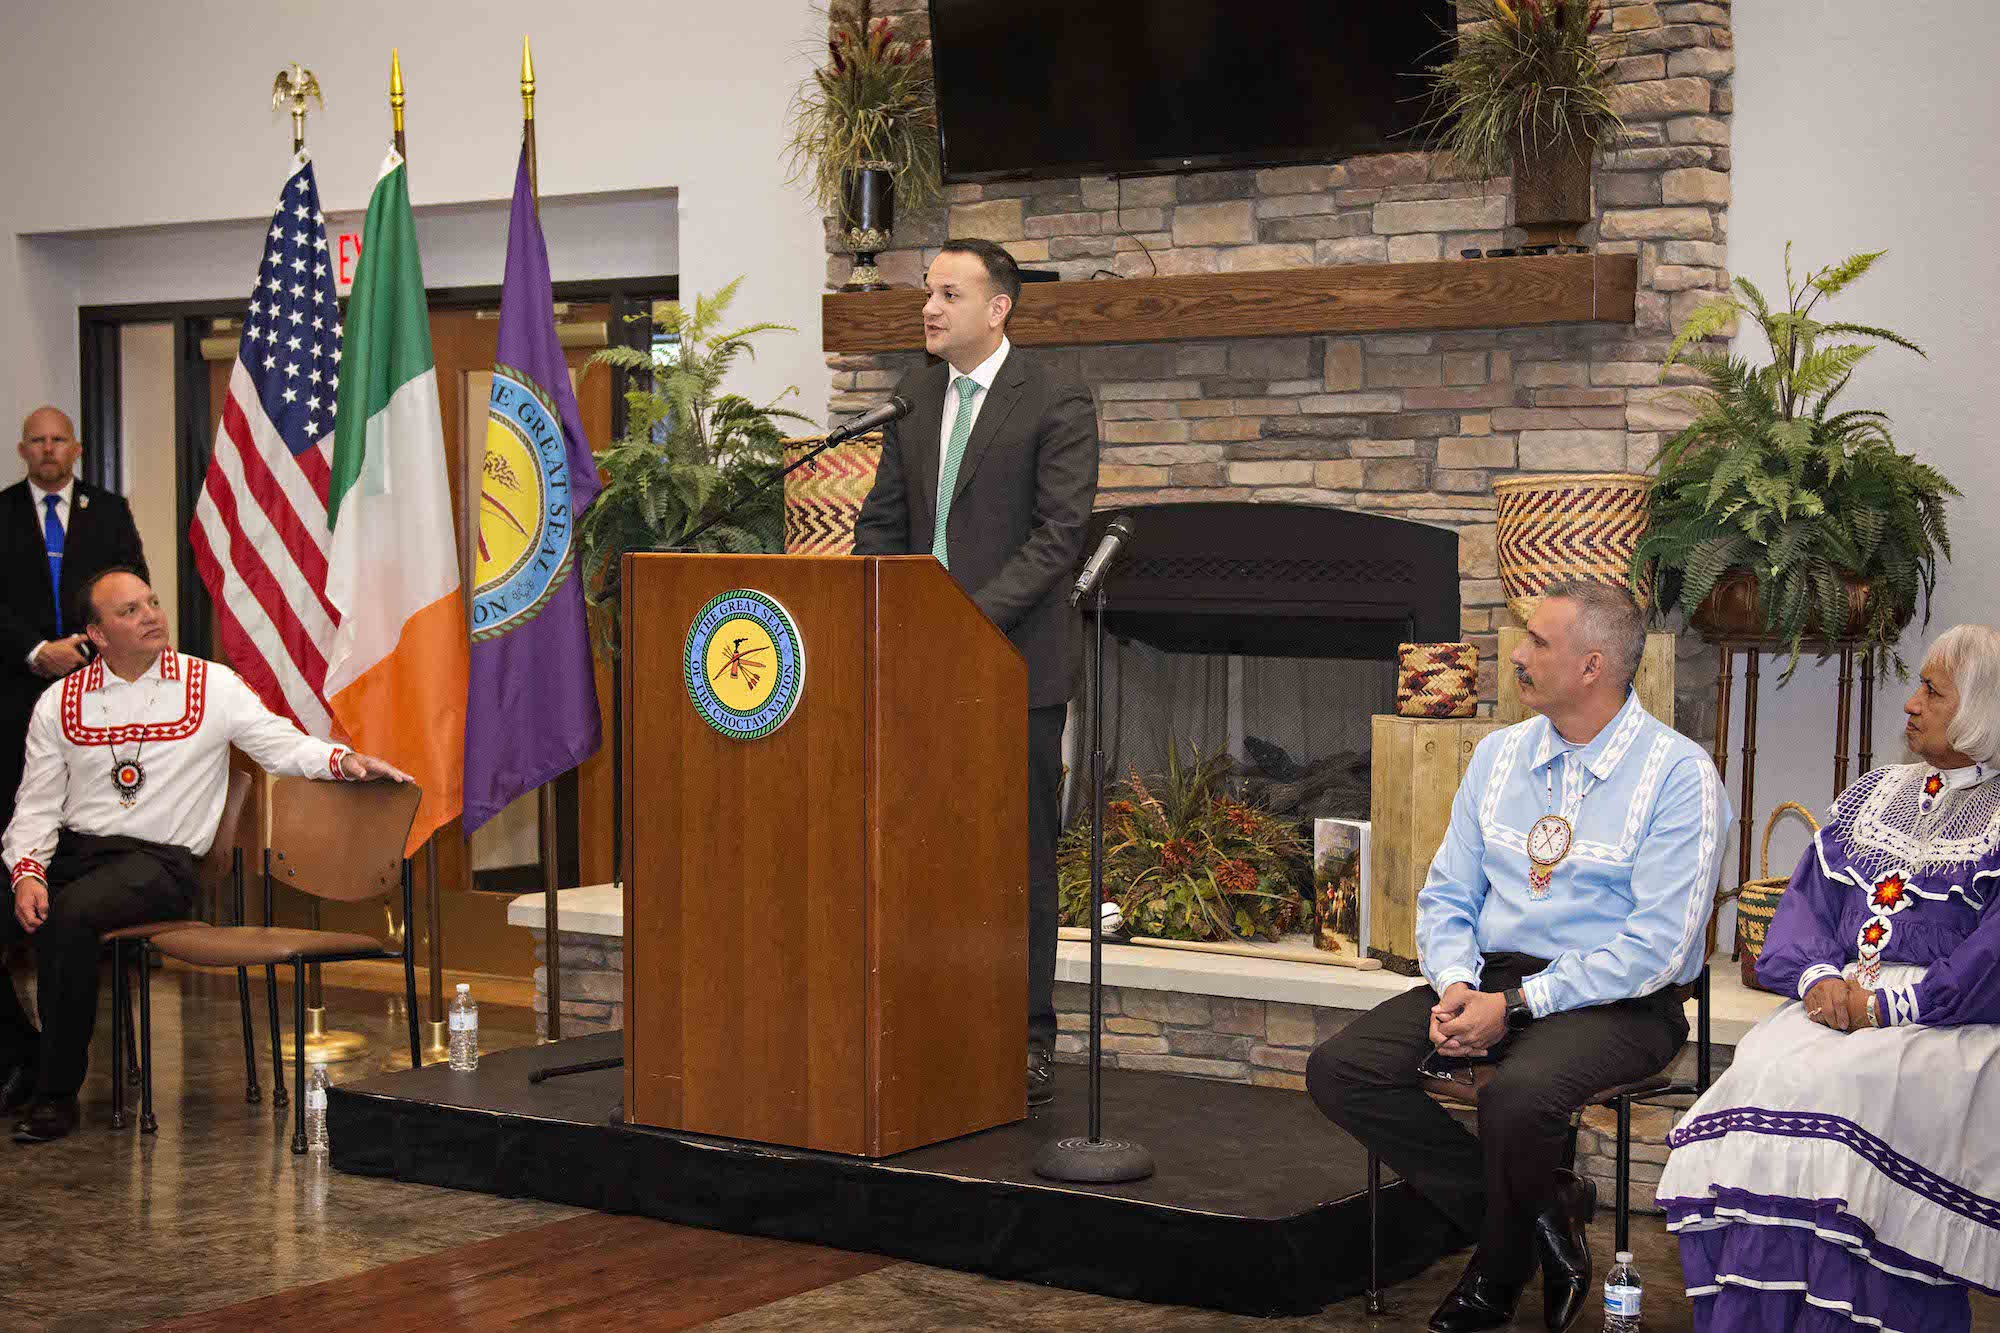 Choctaw Nation welcomes Irish prime minister for historic visit